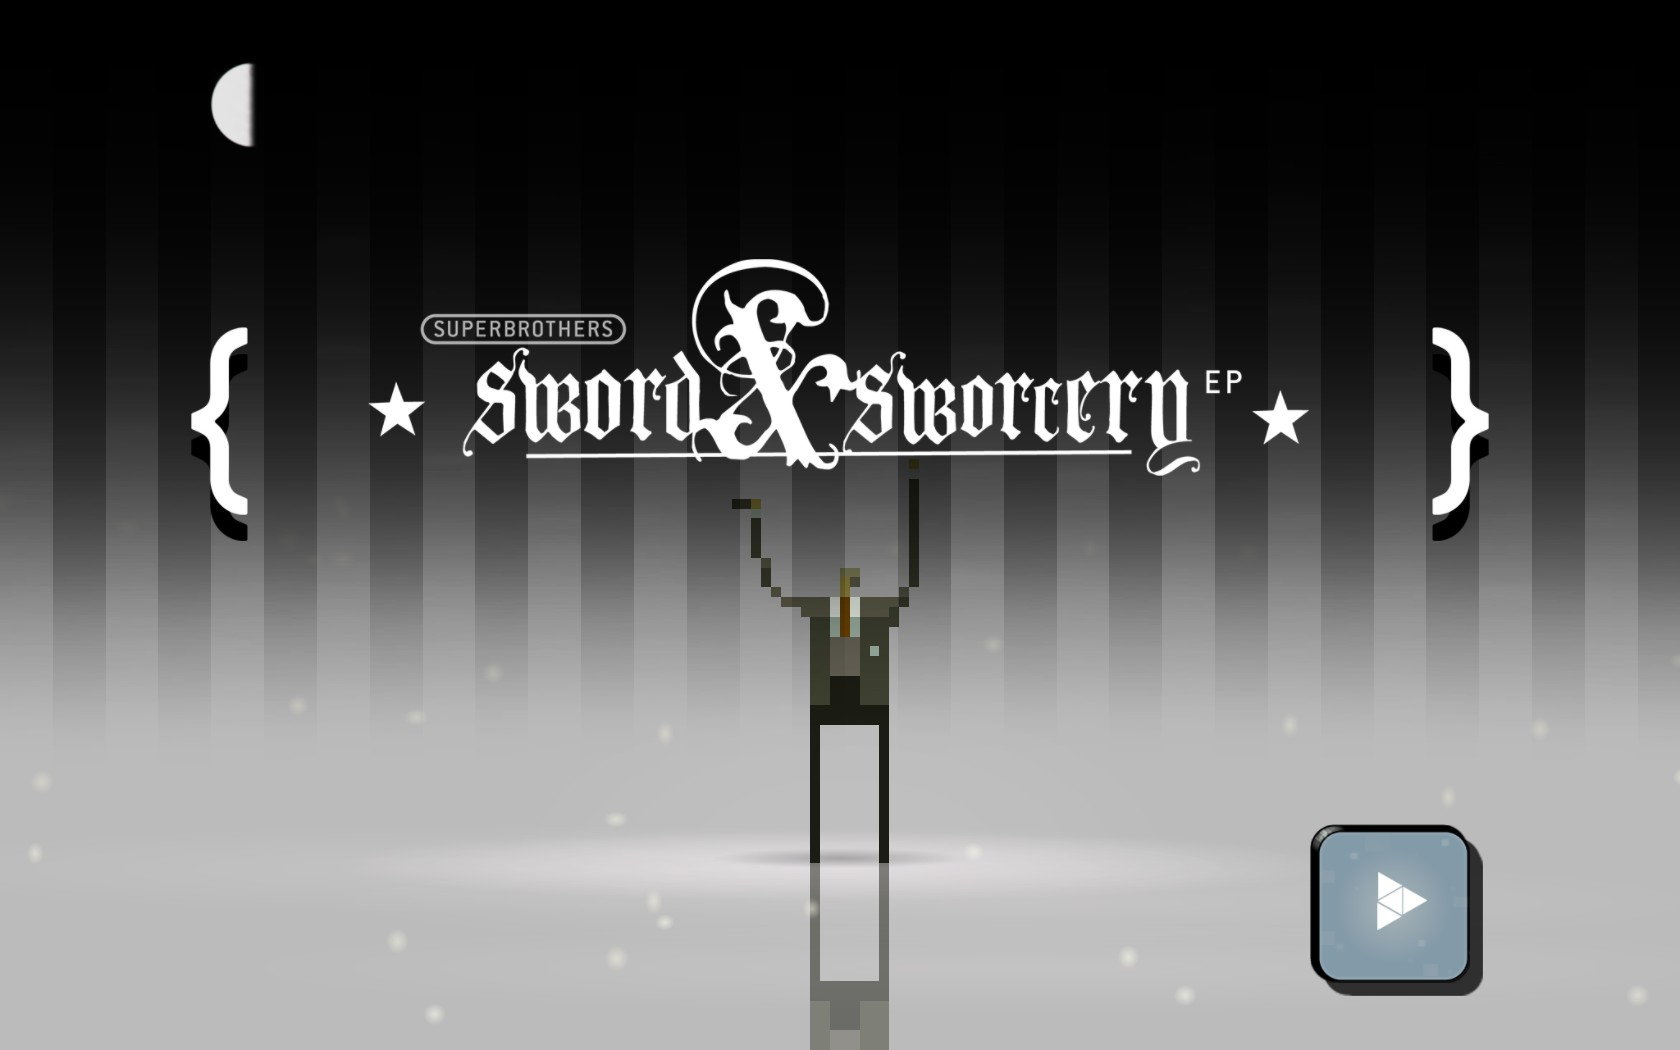 Superbrothers_Sword_%26_Sworcery_EP_Title